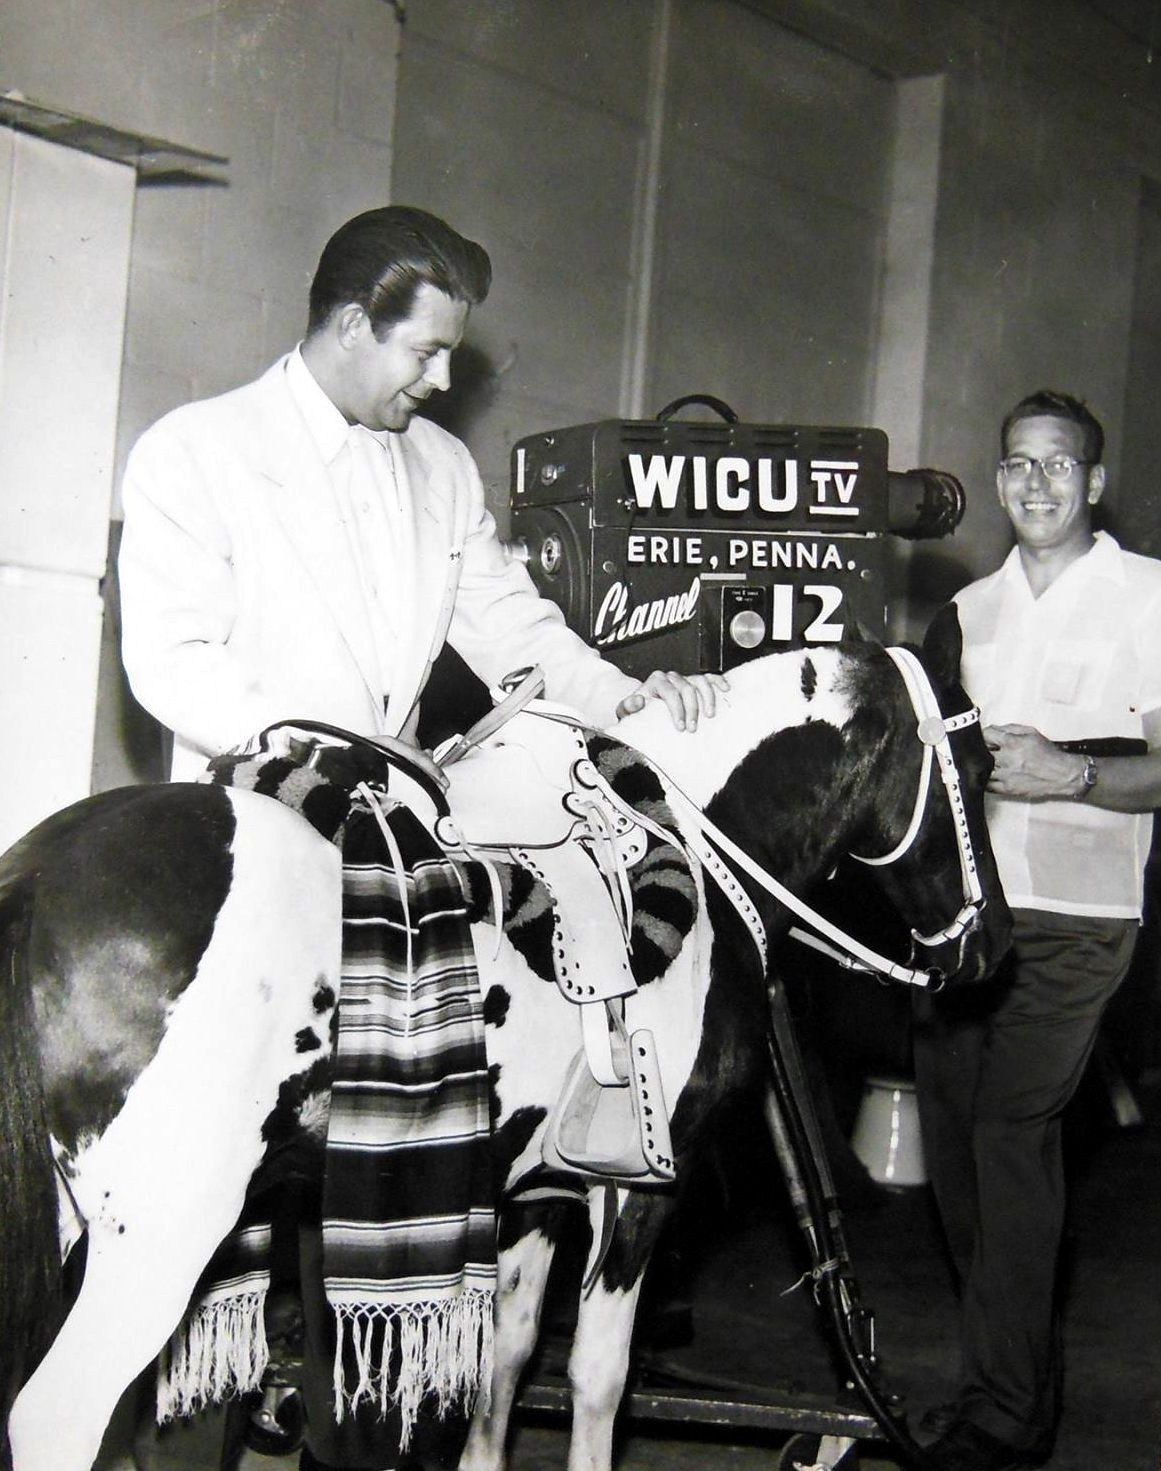 WICU-TV Vance McBryde and friend in the Studio (1955) | Good old